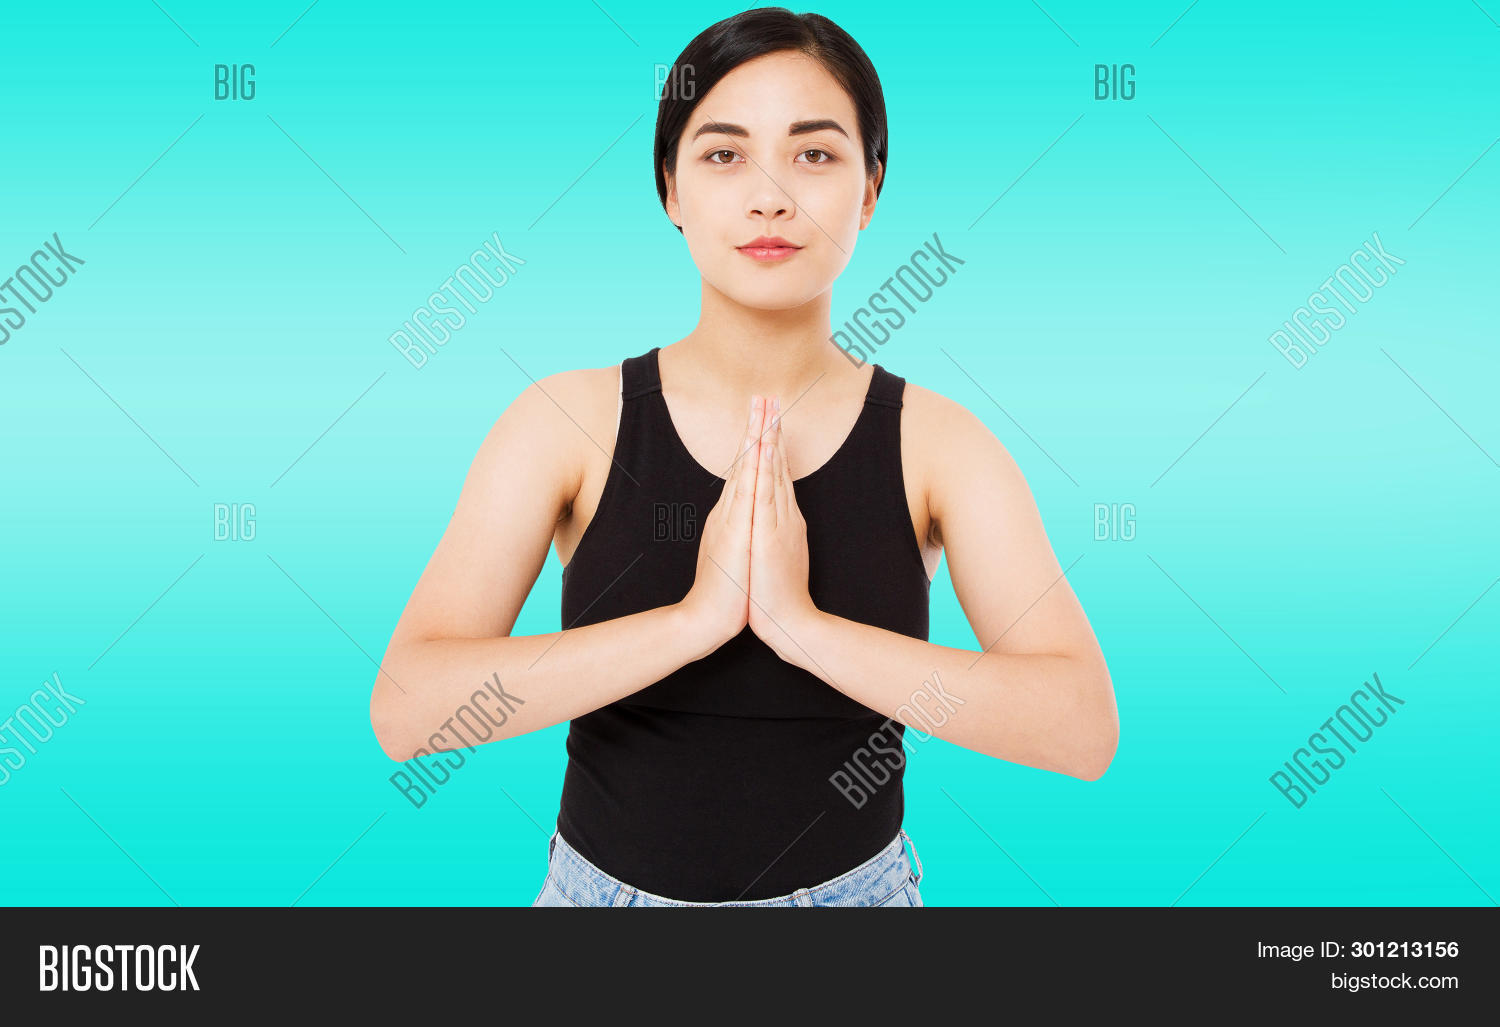 activity,asana,attractive,background,beautiful,beauty,breathing,buddism,class,closeup,concept,contemplation,enjoy,exercise,female,fitness,girl,greet,gym,health,hinduism,human,lady,life,lifestyle,meditation,model,mudra,palms,people,person,pose,practice,pranayama,prayer,professional,relax,relaxation,relief,sign,spirituality,sport,studio,symbol,training,woman,yoga,yogi,young